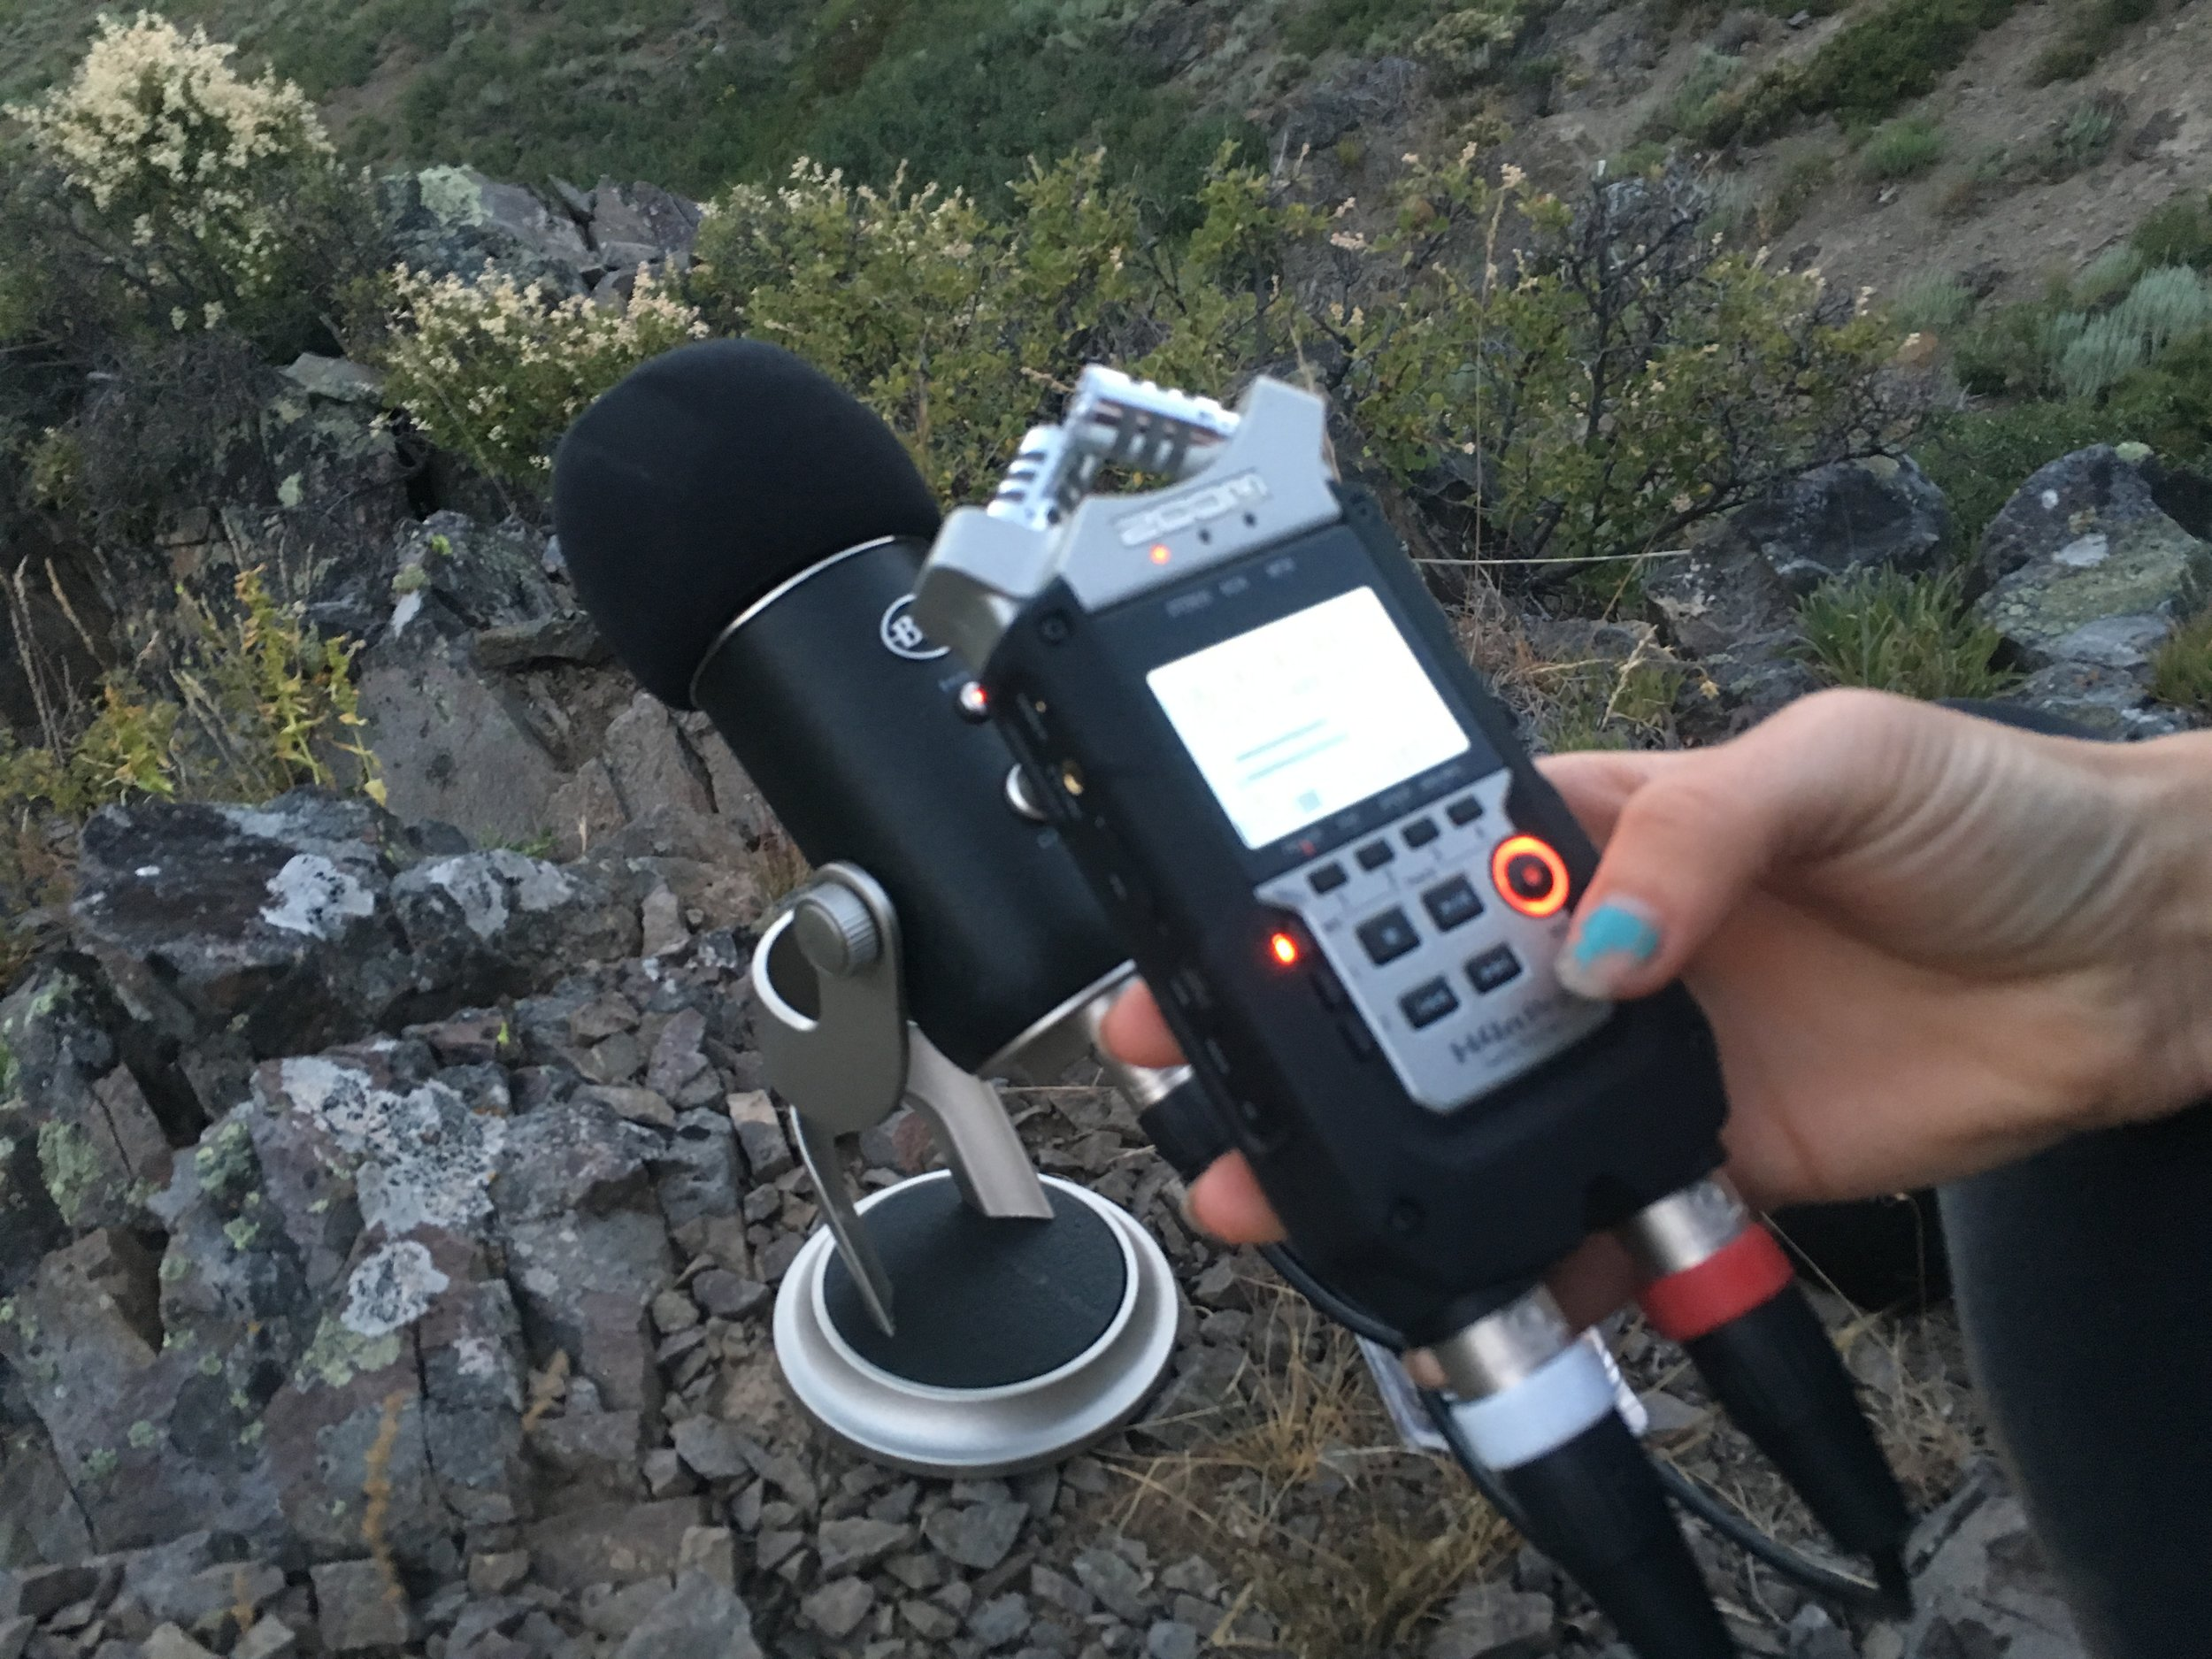 Howl survey recording equipment. Photo: Avery Shawler